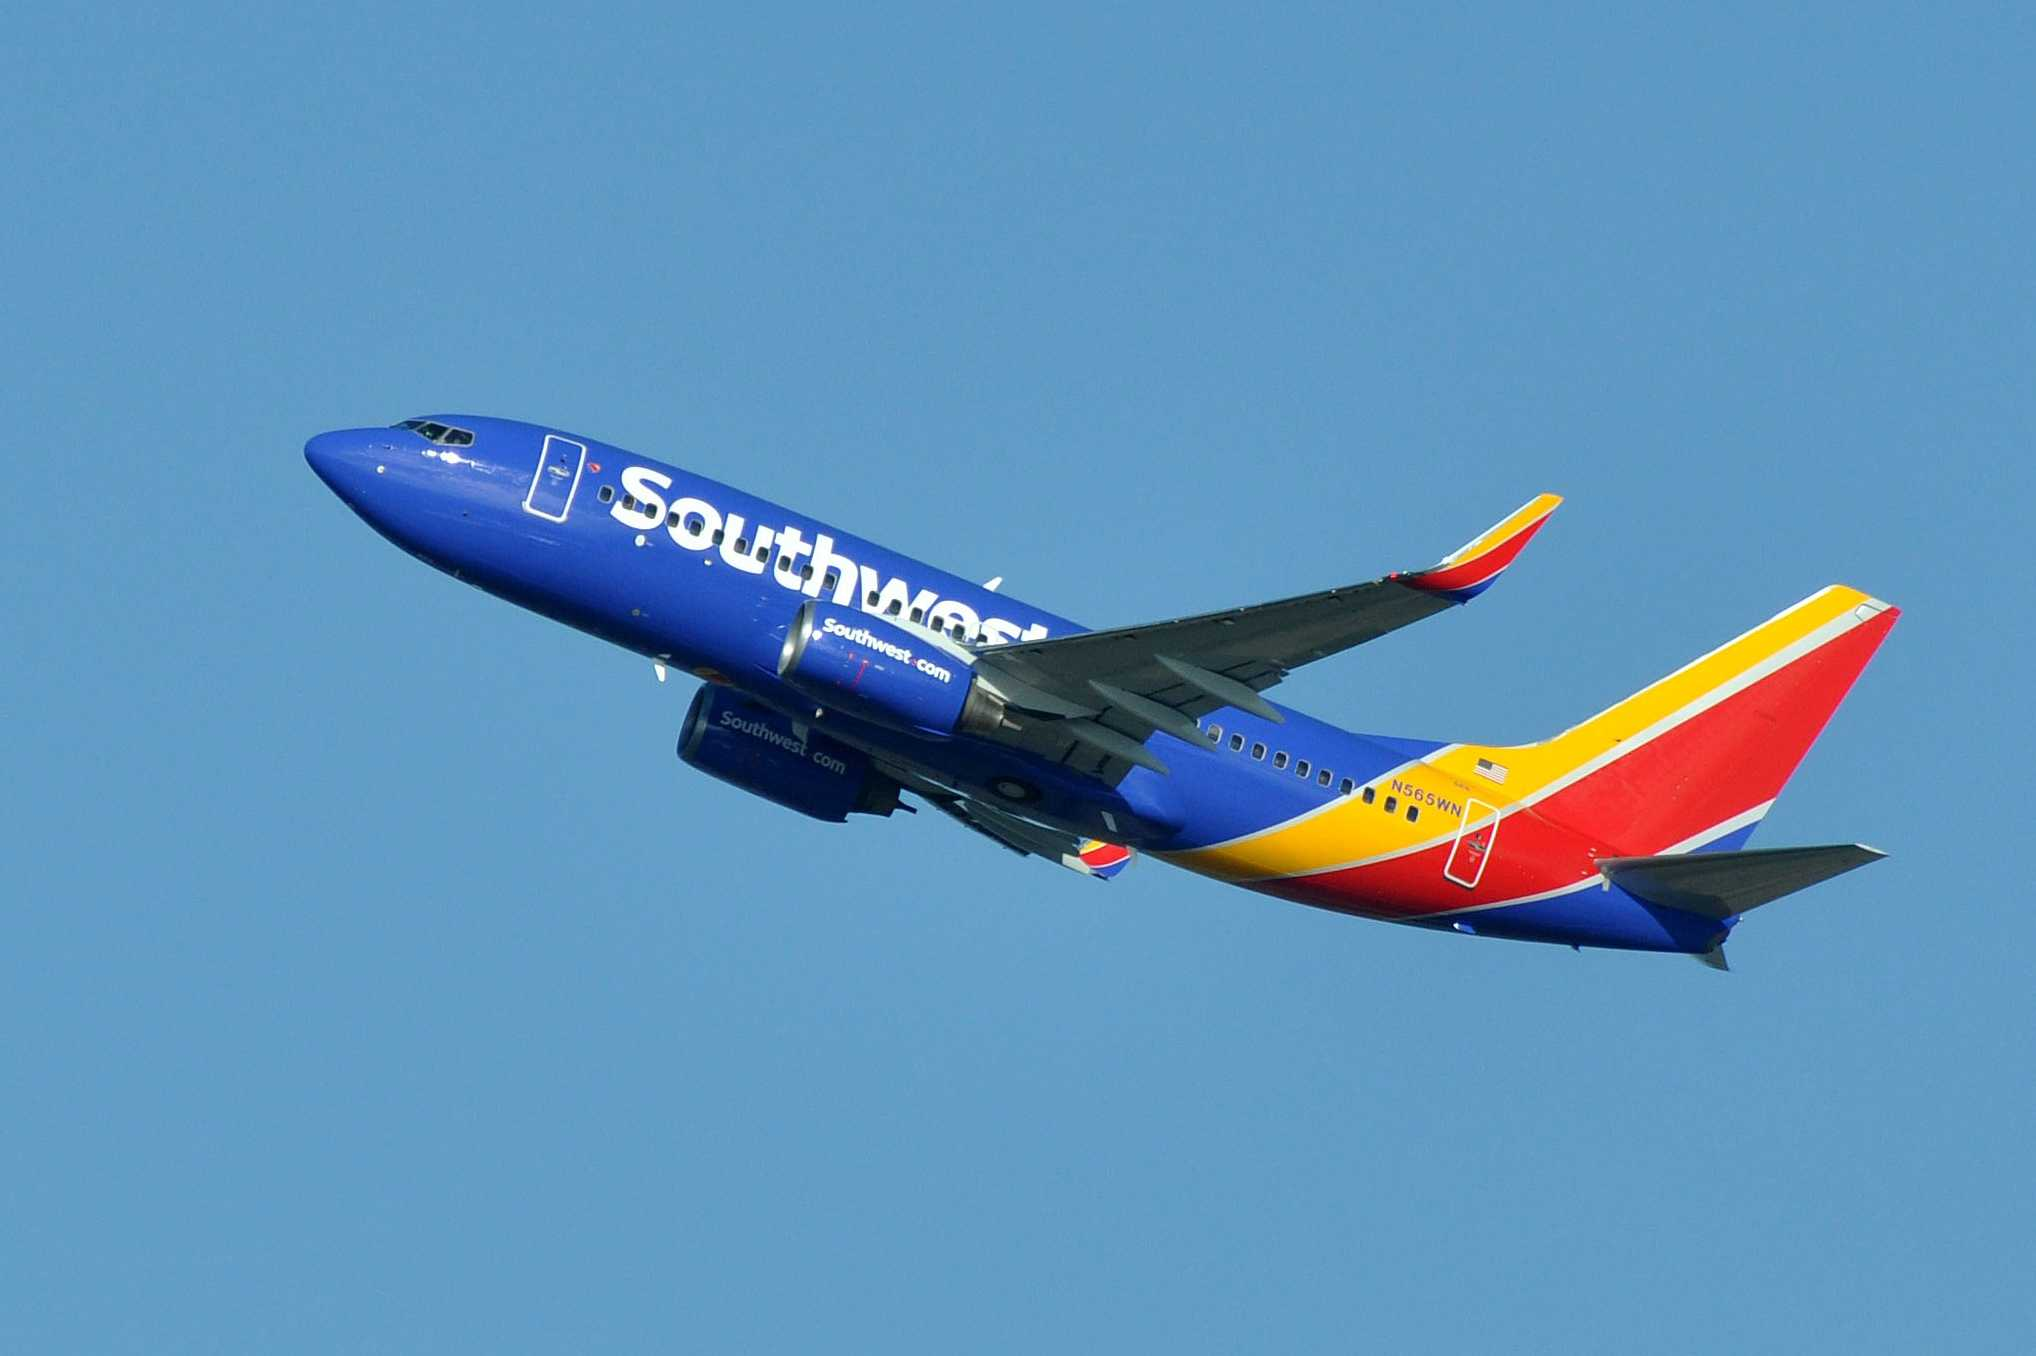 OPINION: Why You Should Fly Southwest